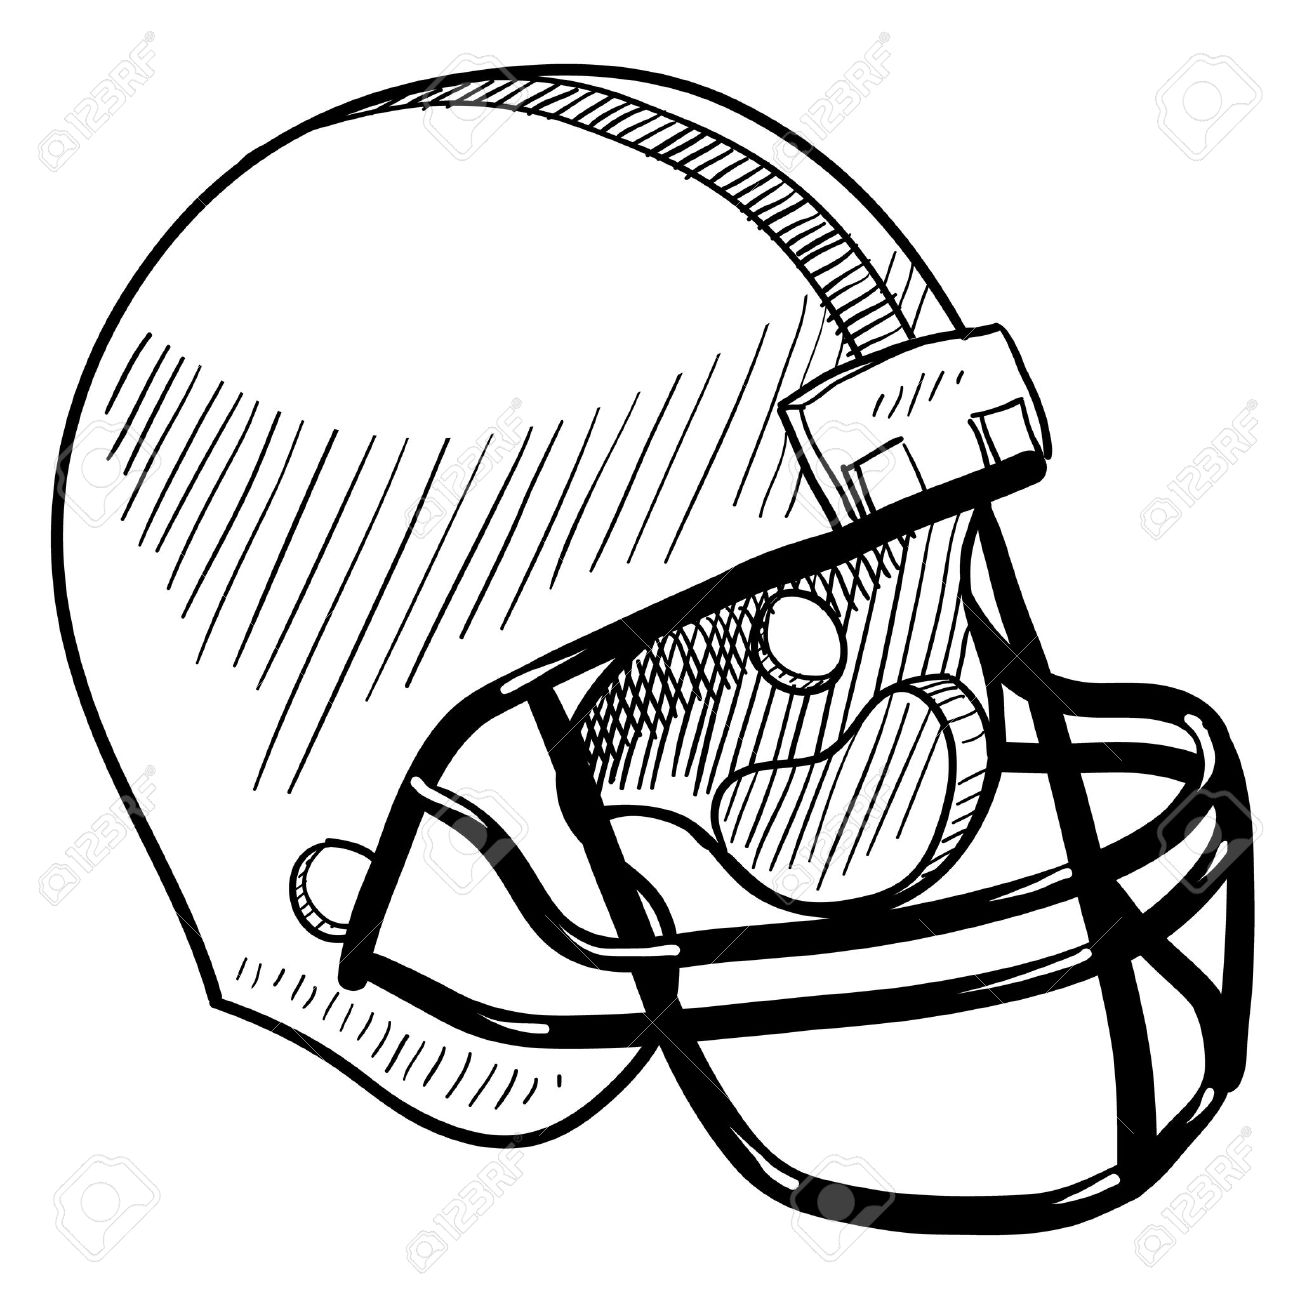 doodle style football helmet sports equipment royalty free cliparts rh 123rf com